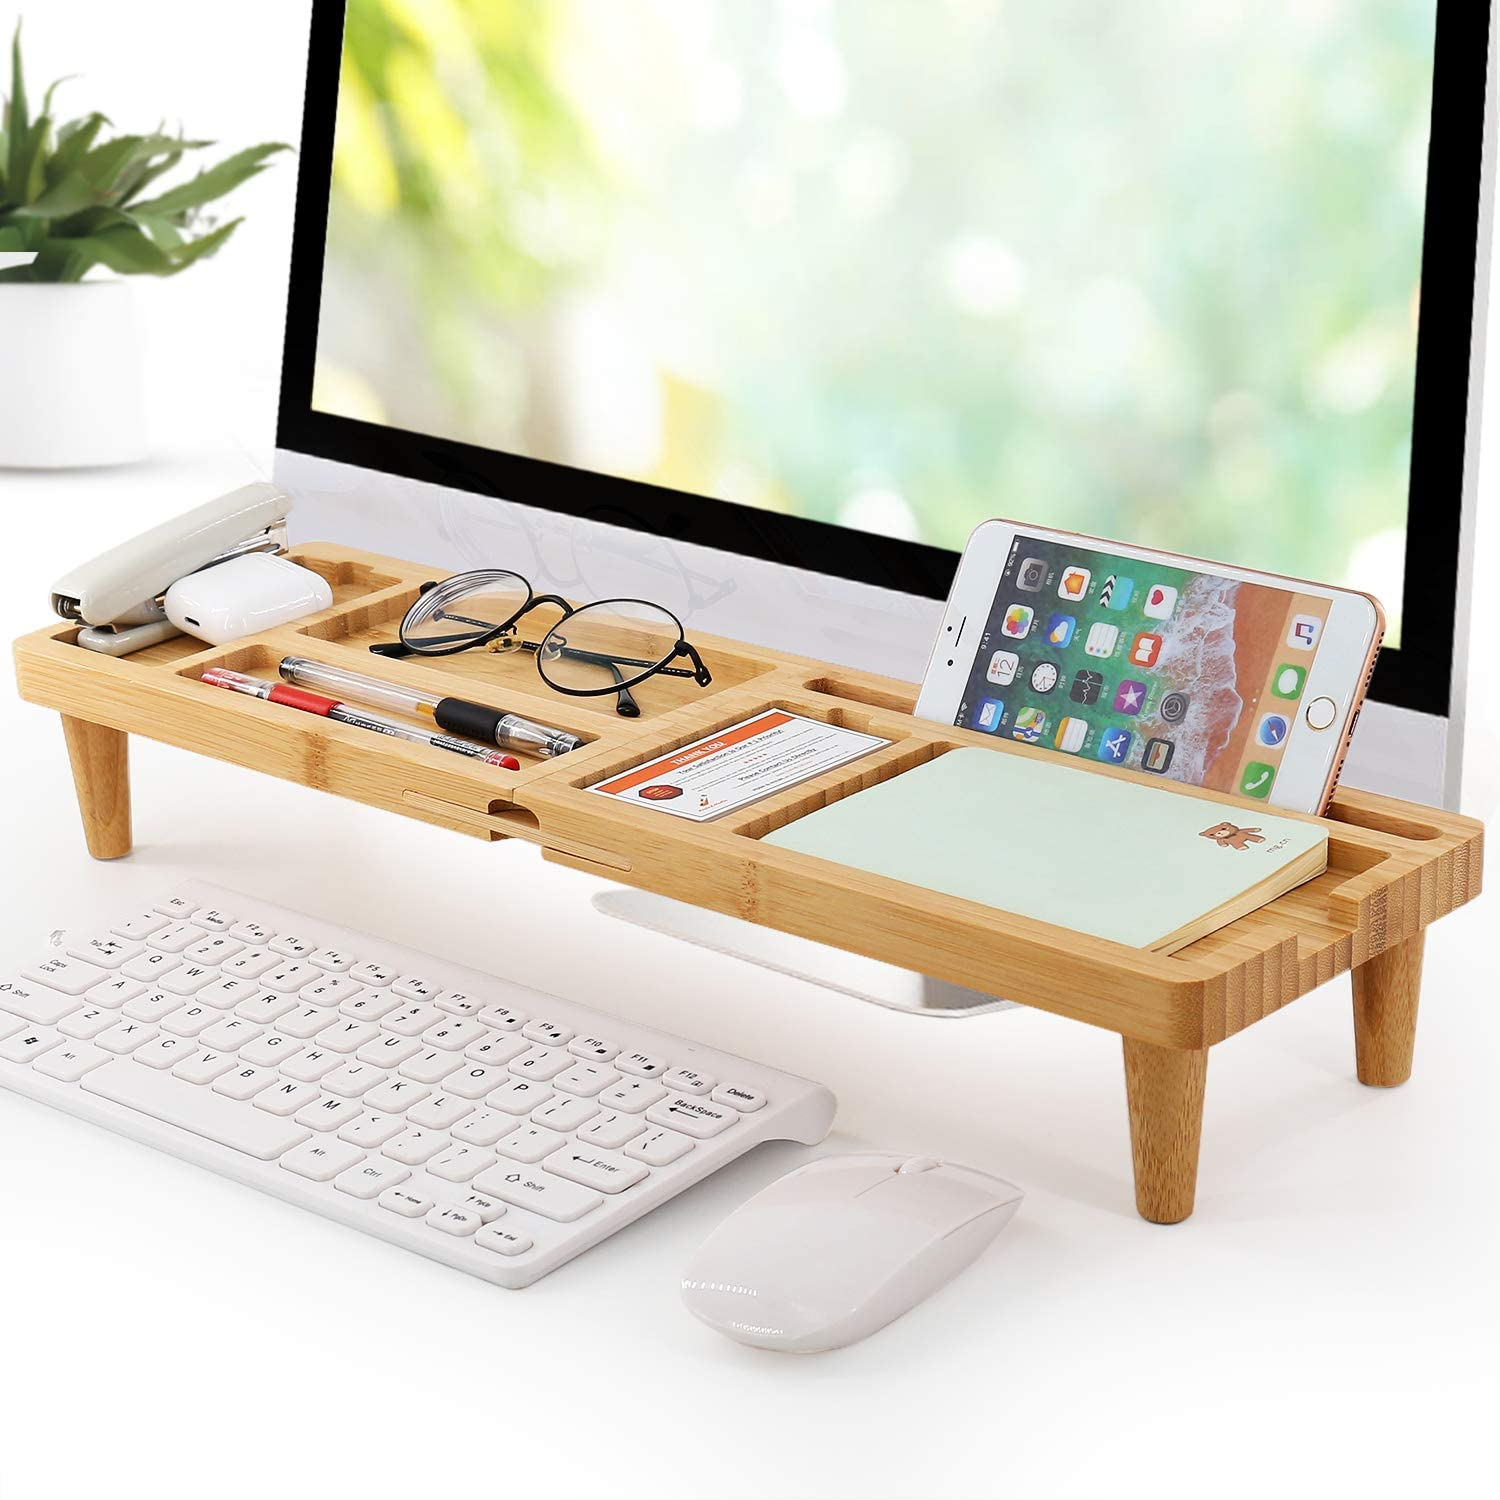 Bamboo Desk Organizer Tray for Saving Space, Office Desktop Small Objects  Storage Holder Hide Keyboard Wood Shelf for Phone, Tablet, Glasses, Pen,  and